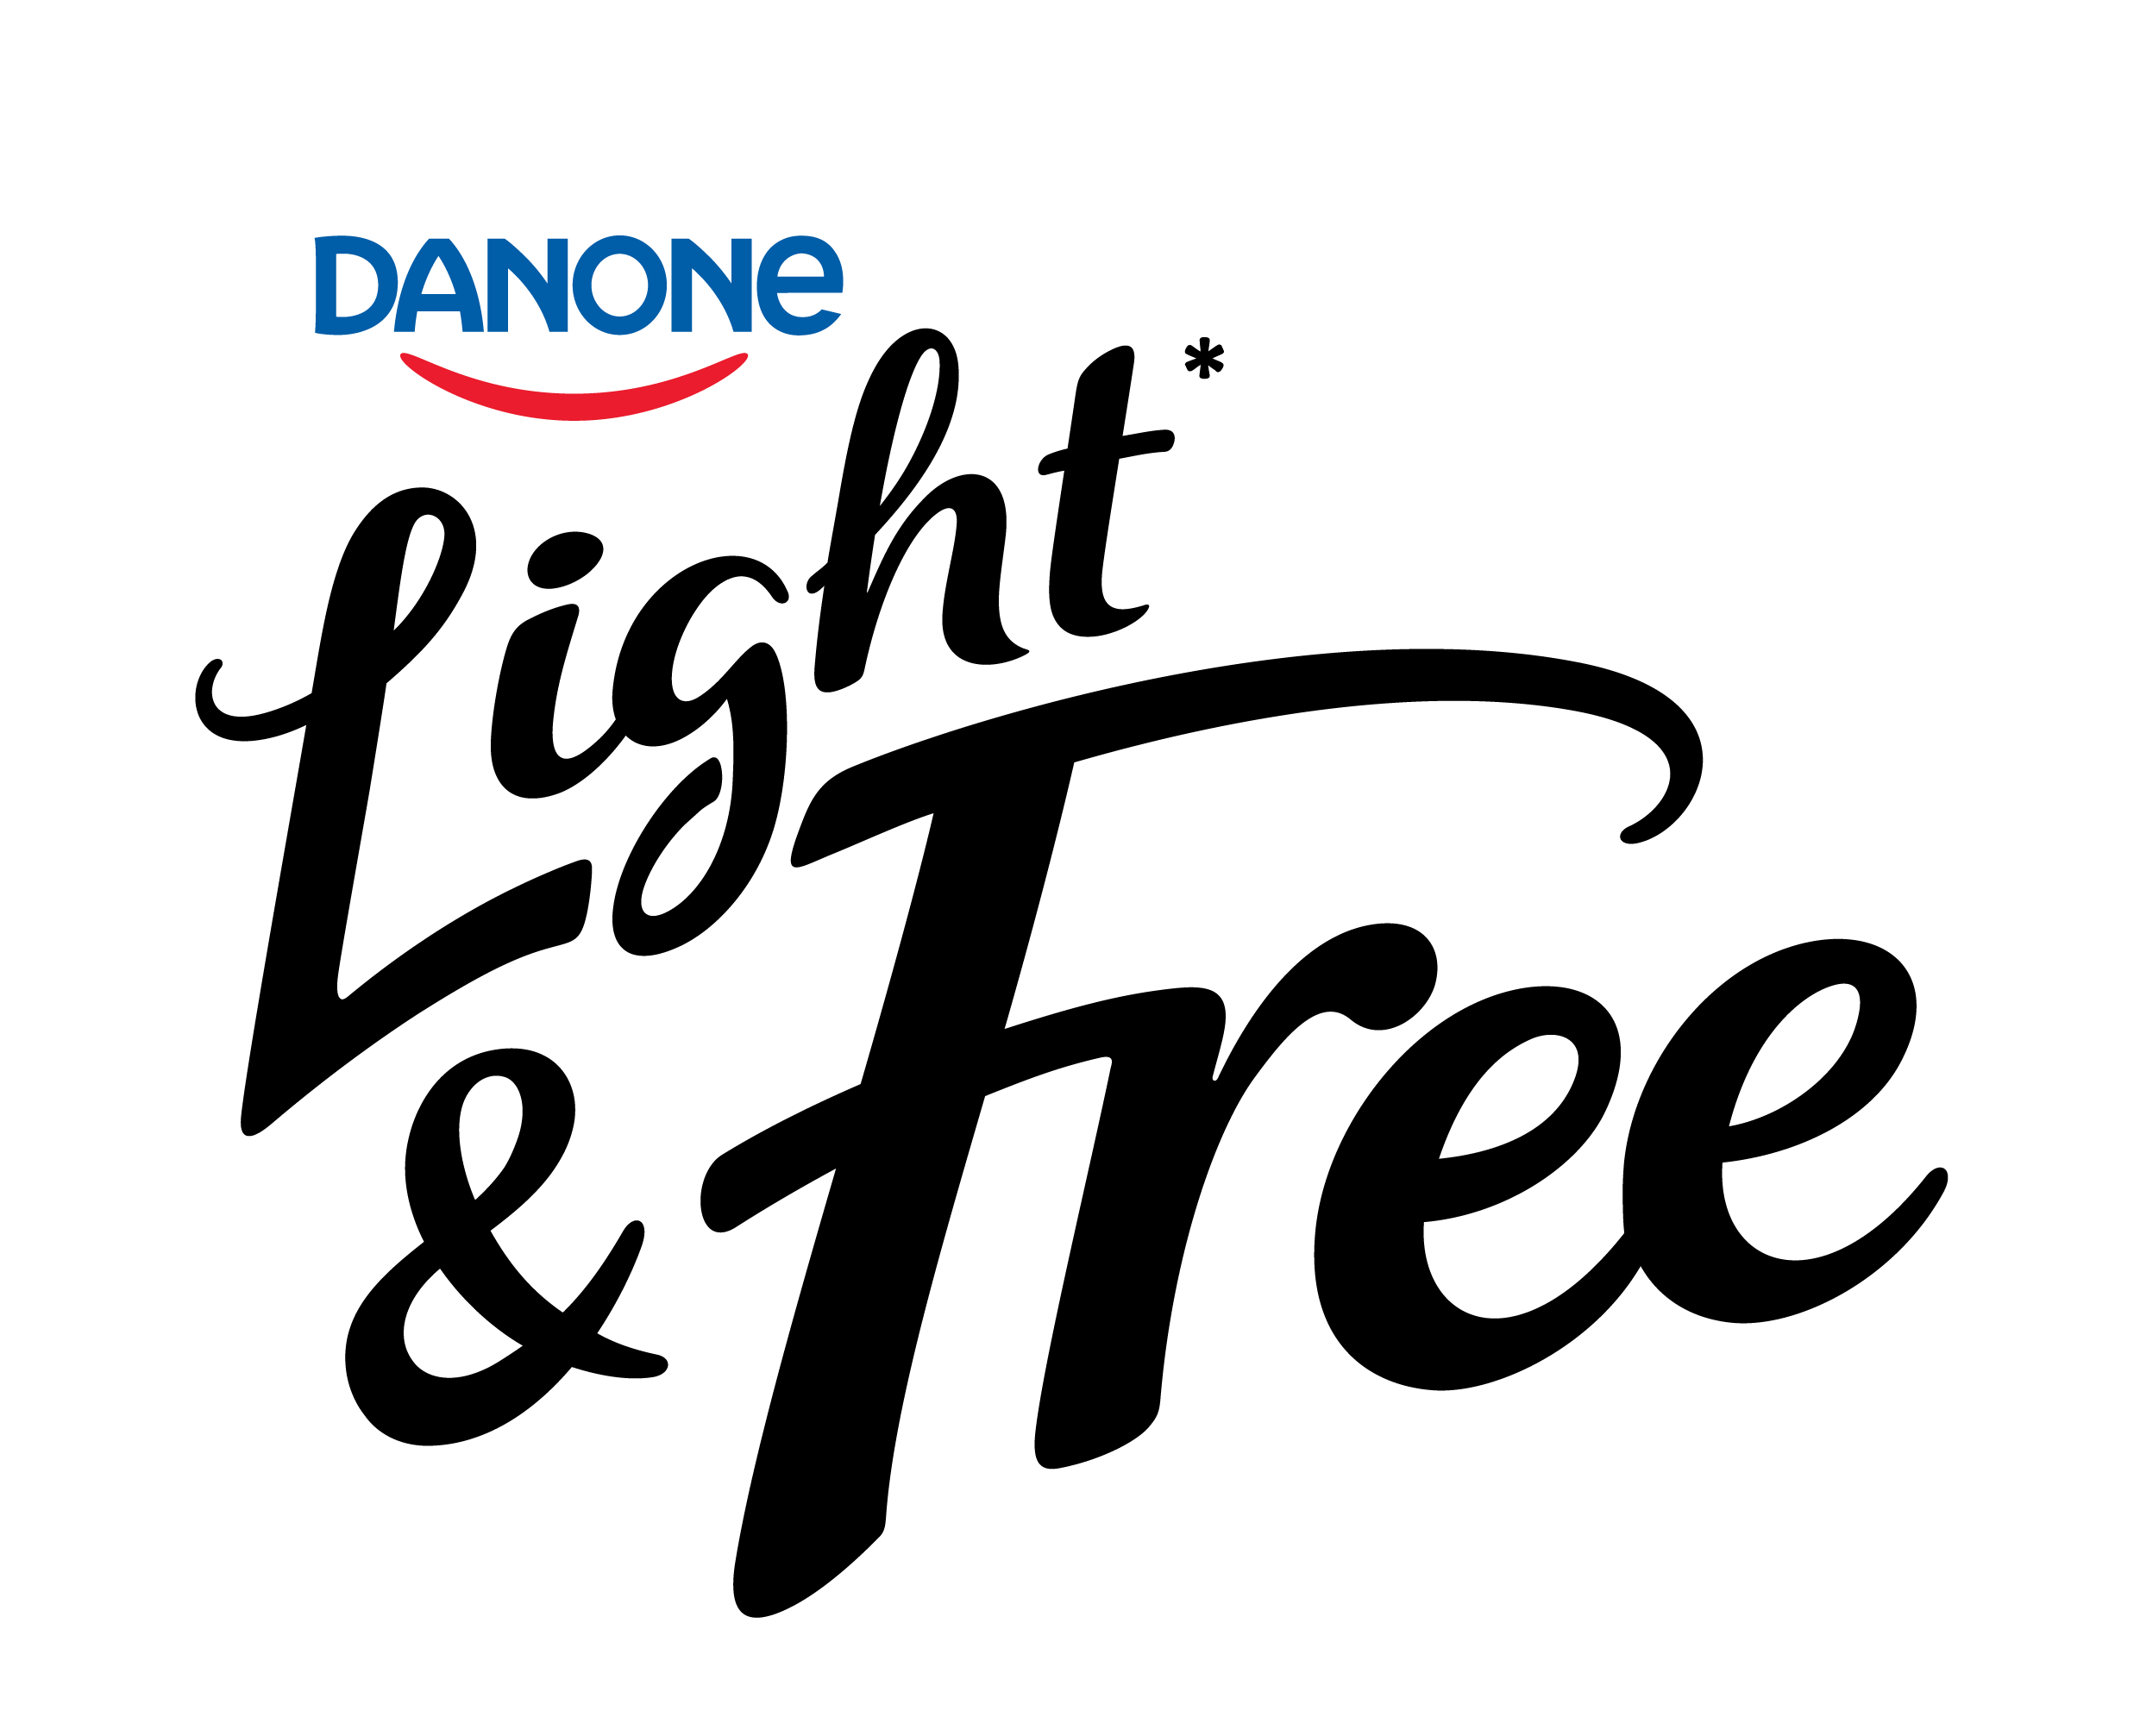 Danone Light & Free